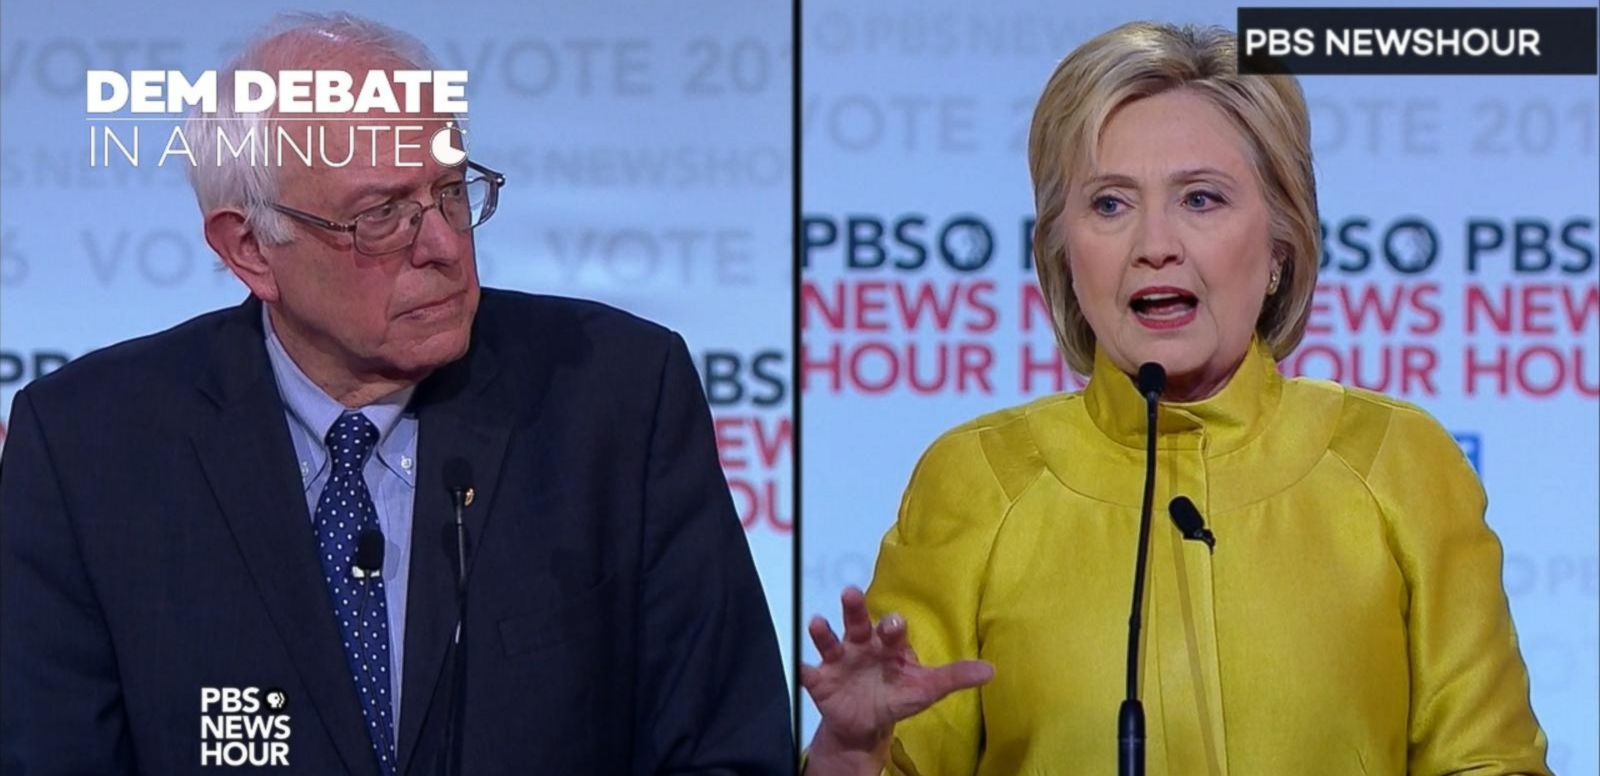 VIDEO: Sixth Democratic Presidential Debate In A Minute